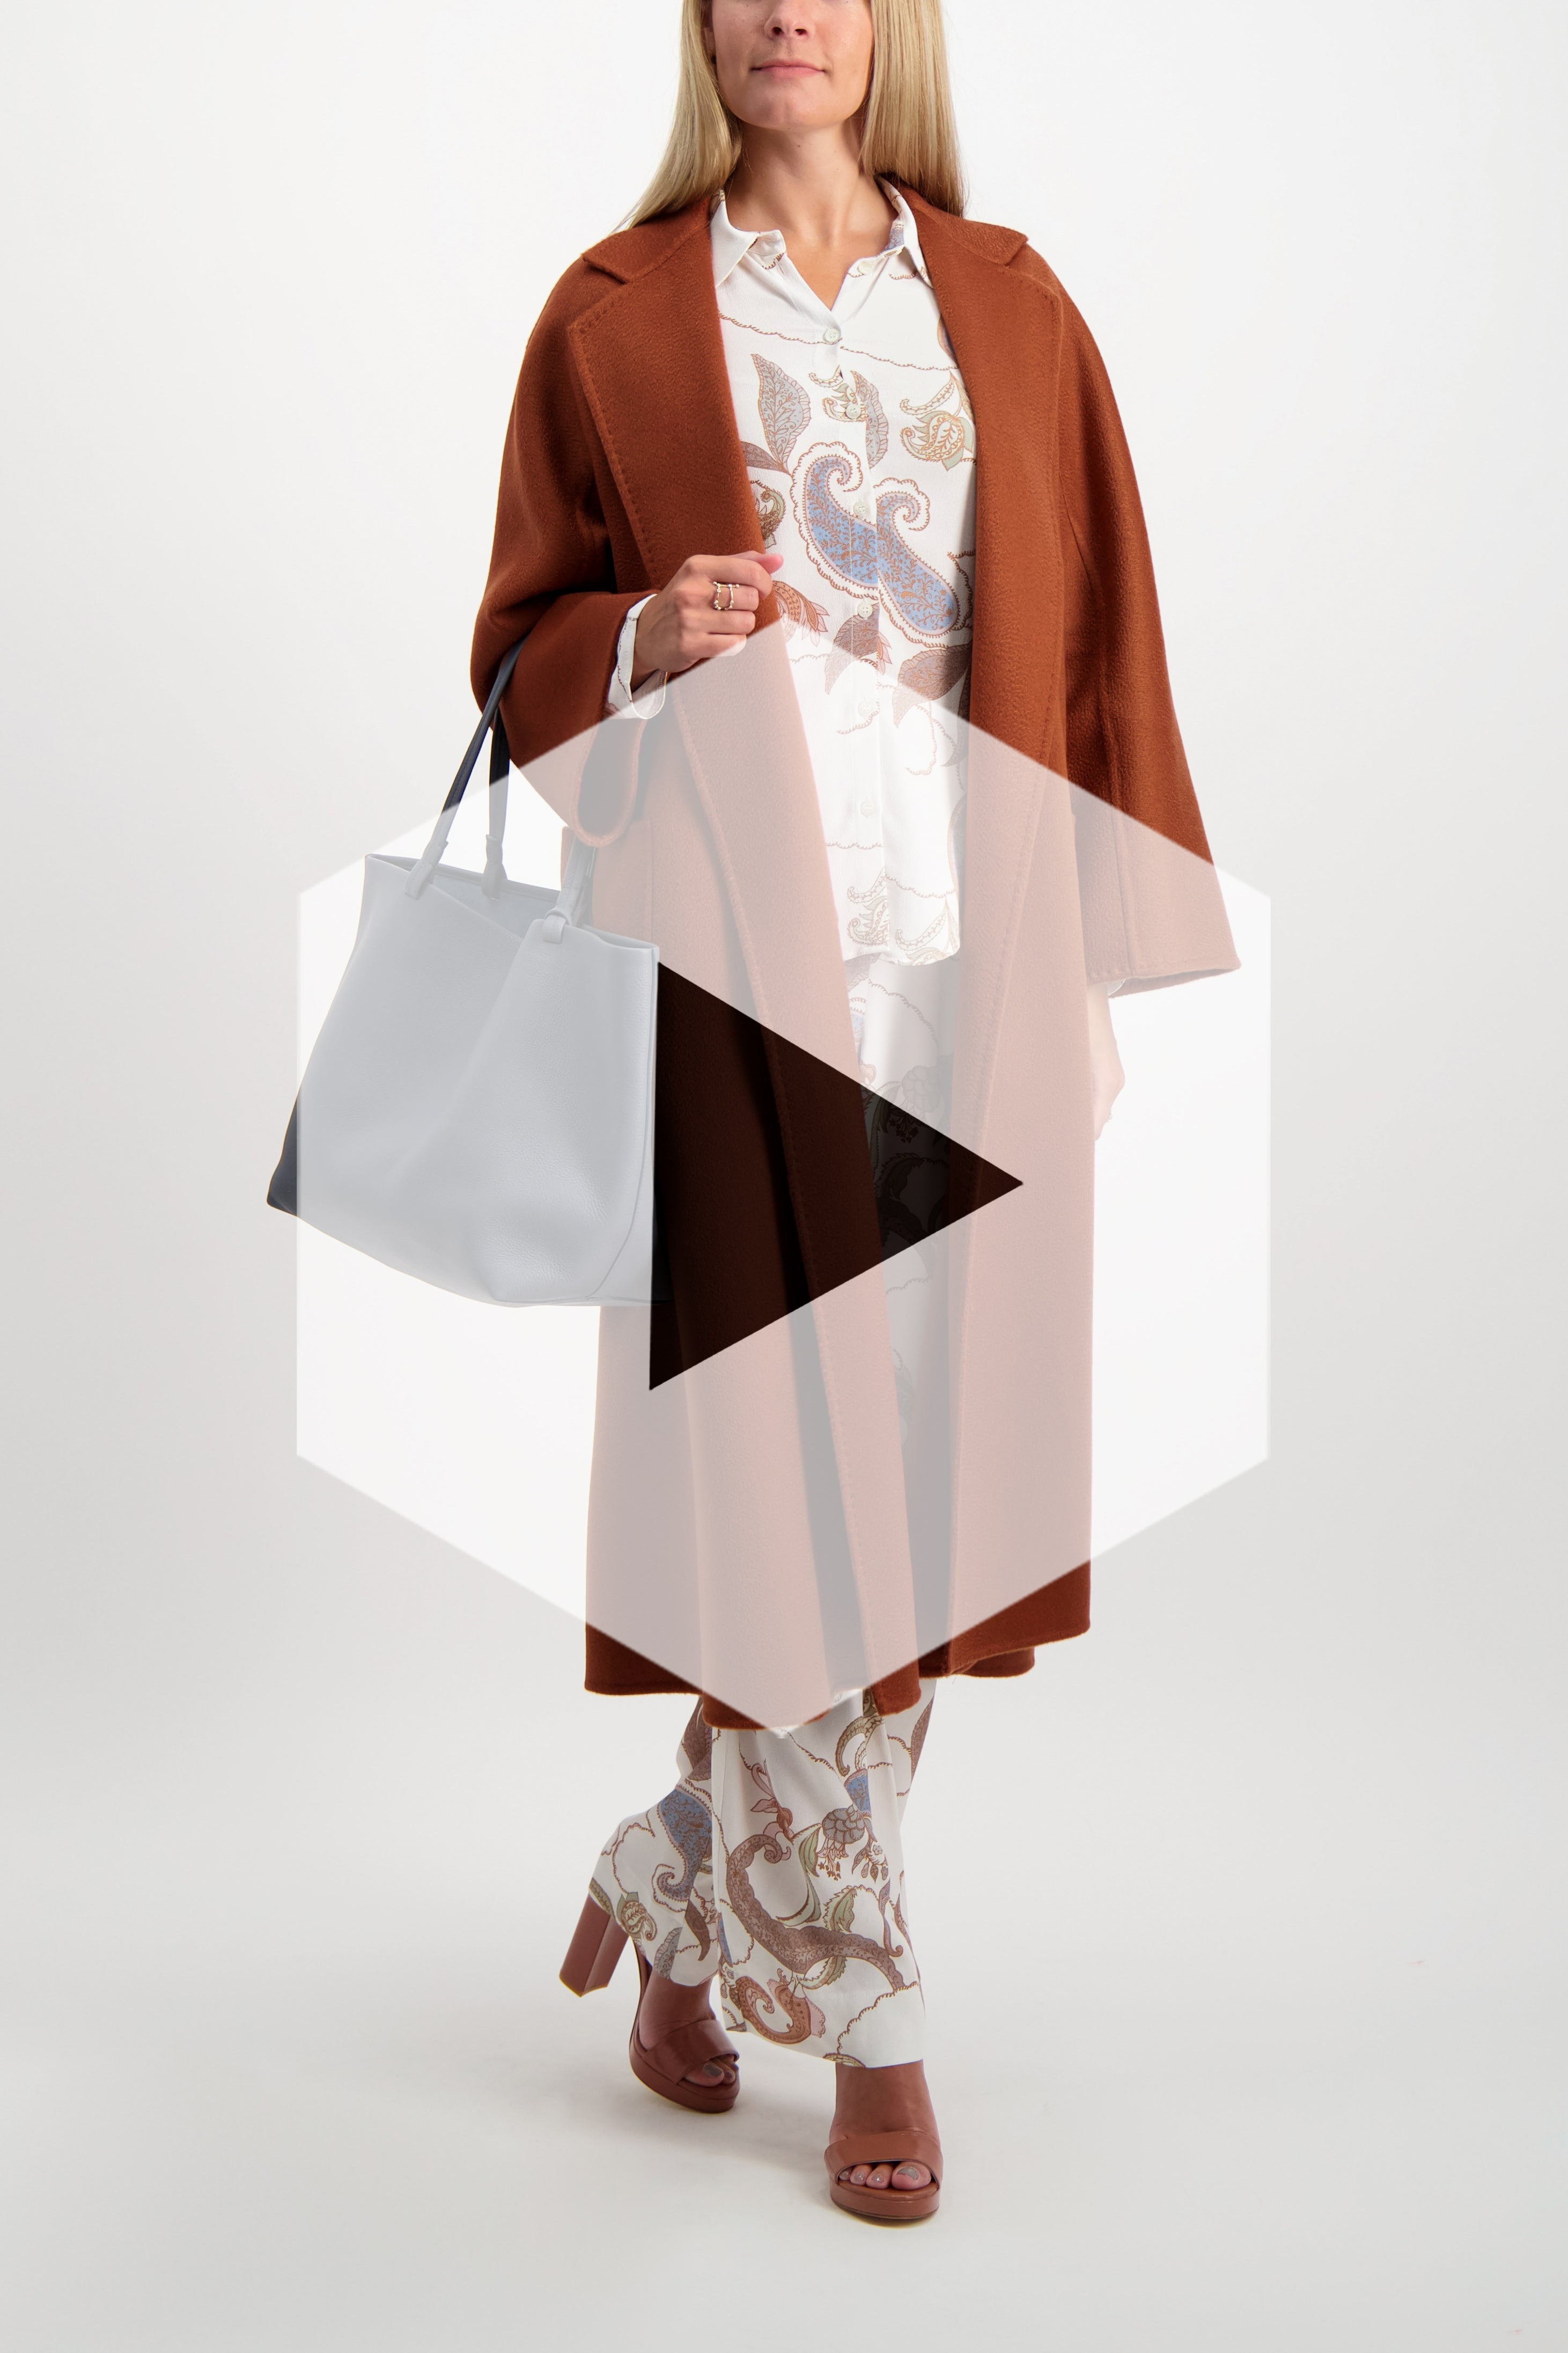 Image Of Model Wearing Max Mara Labbro Coat